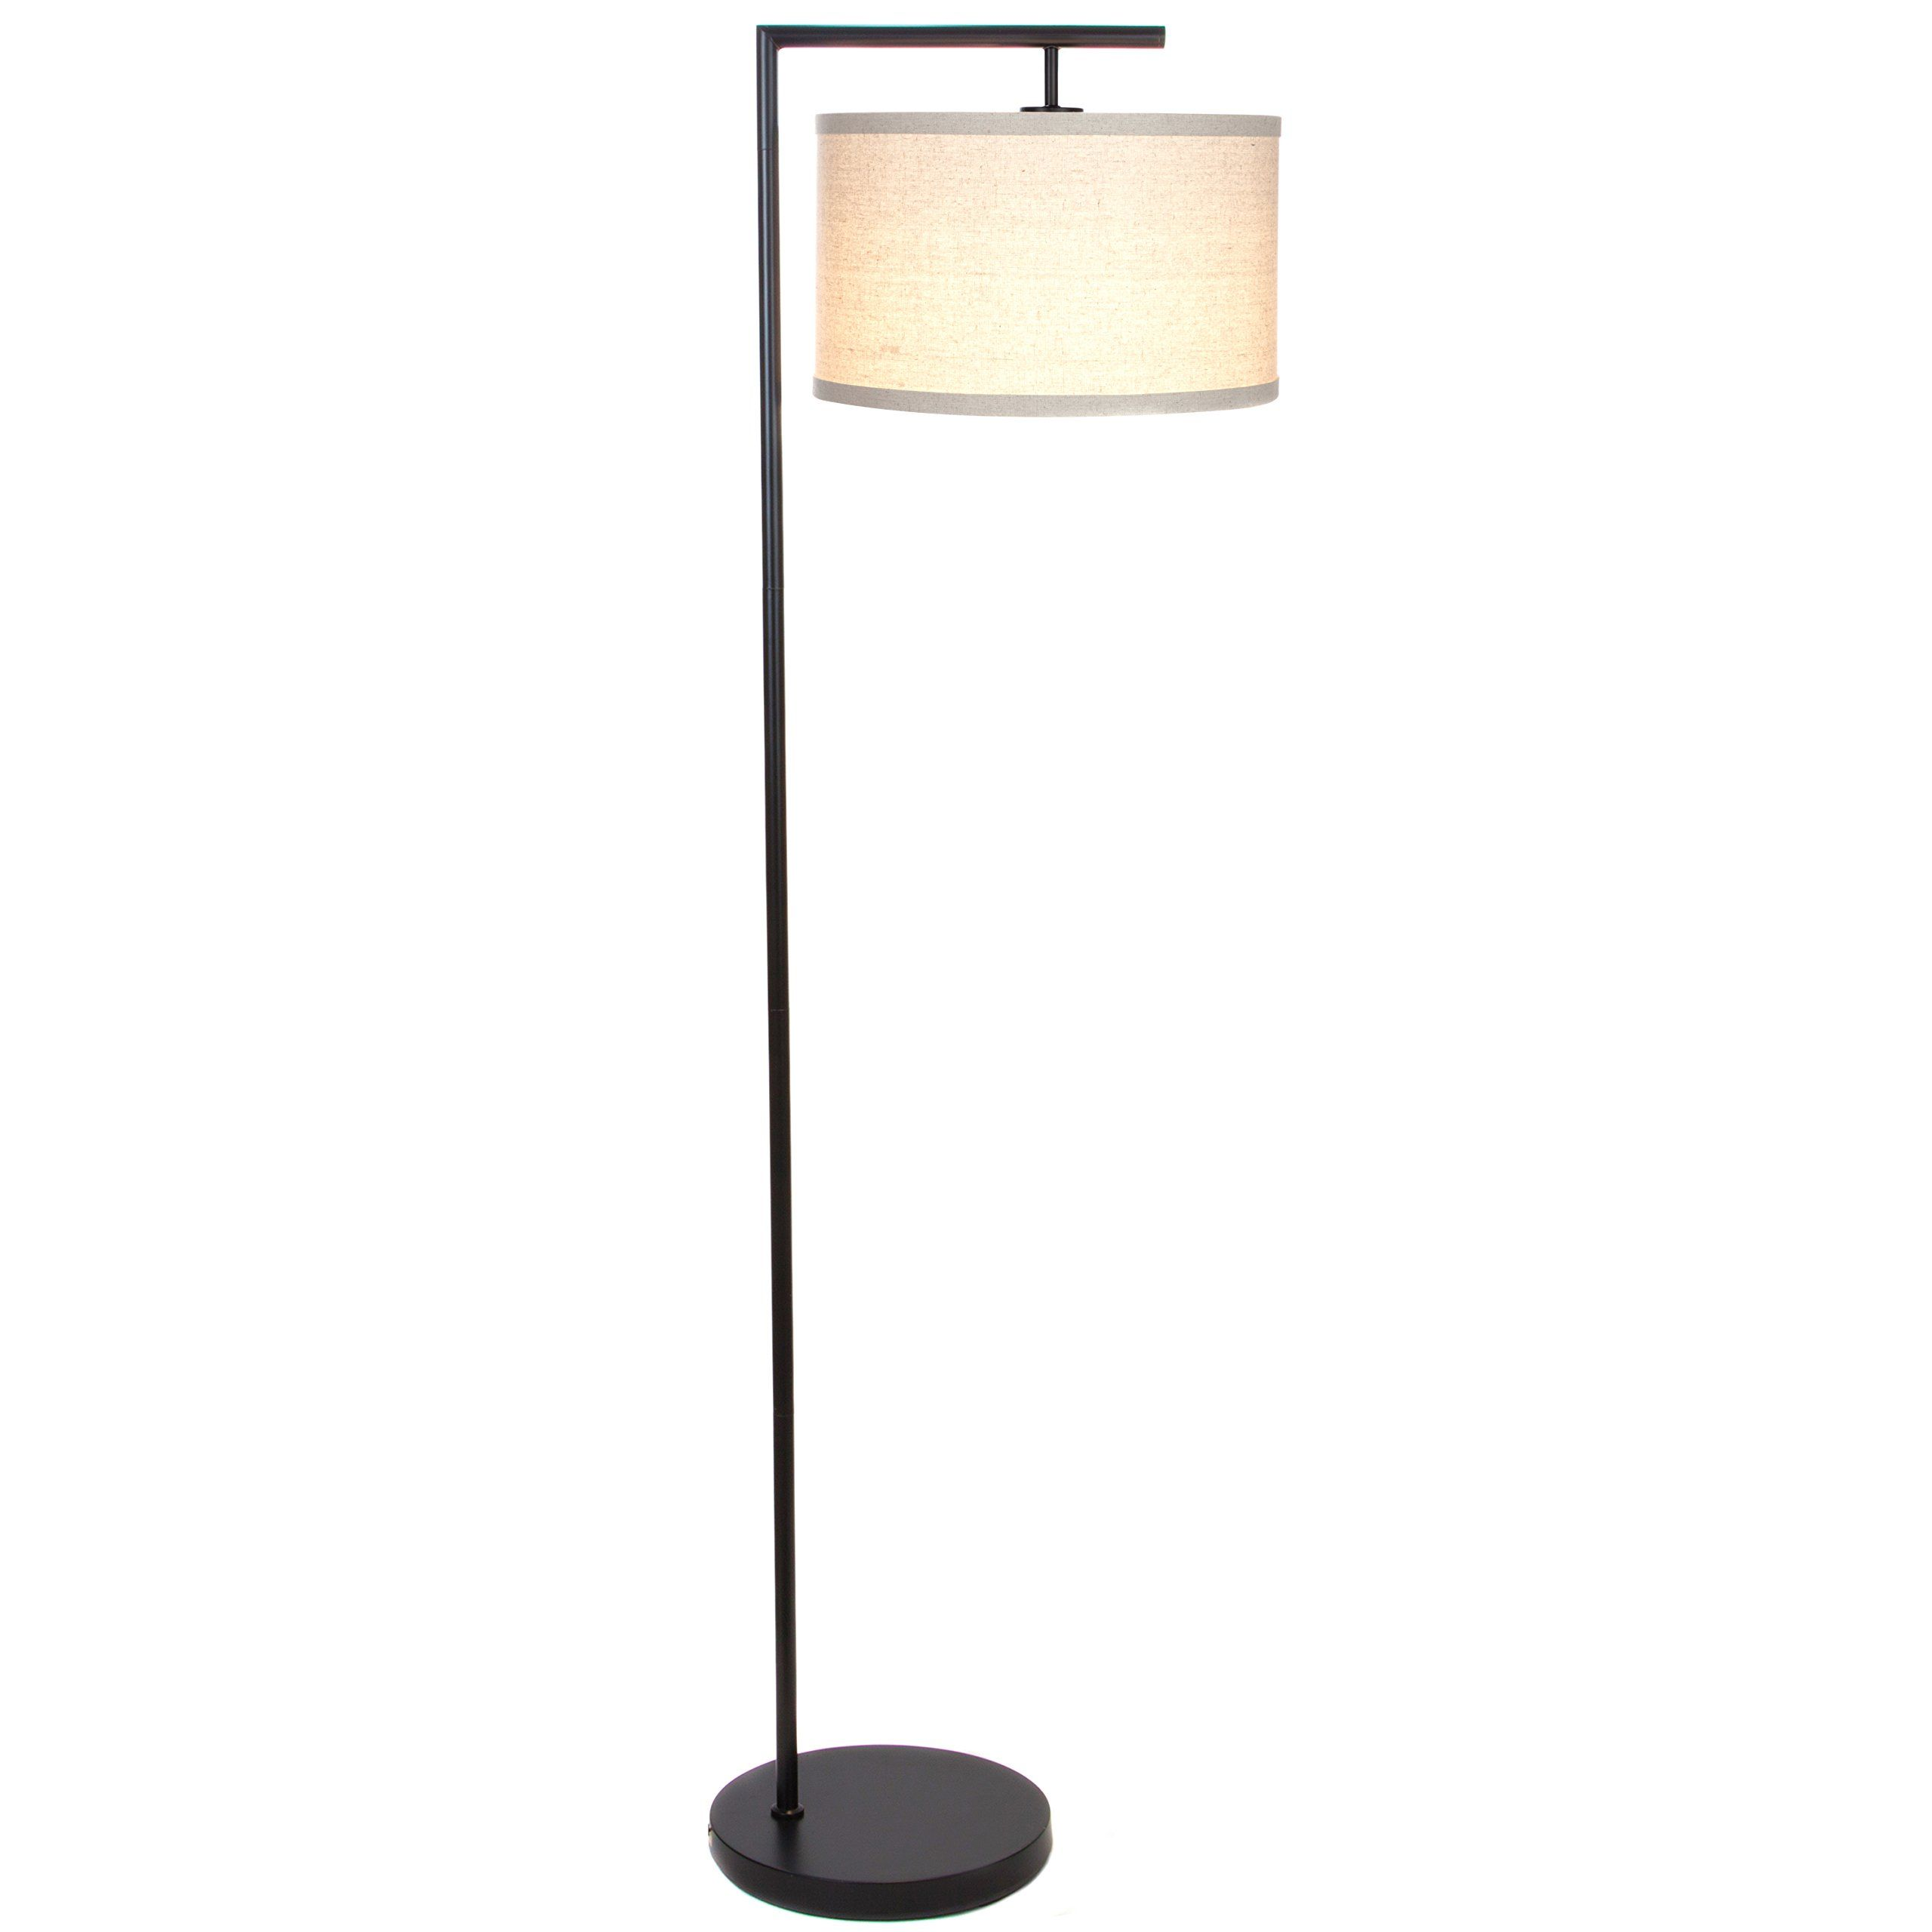 Brightech Montage Modern Led Floor Lamp With Hanging Lamp Shade